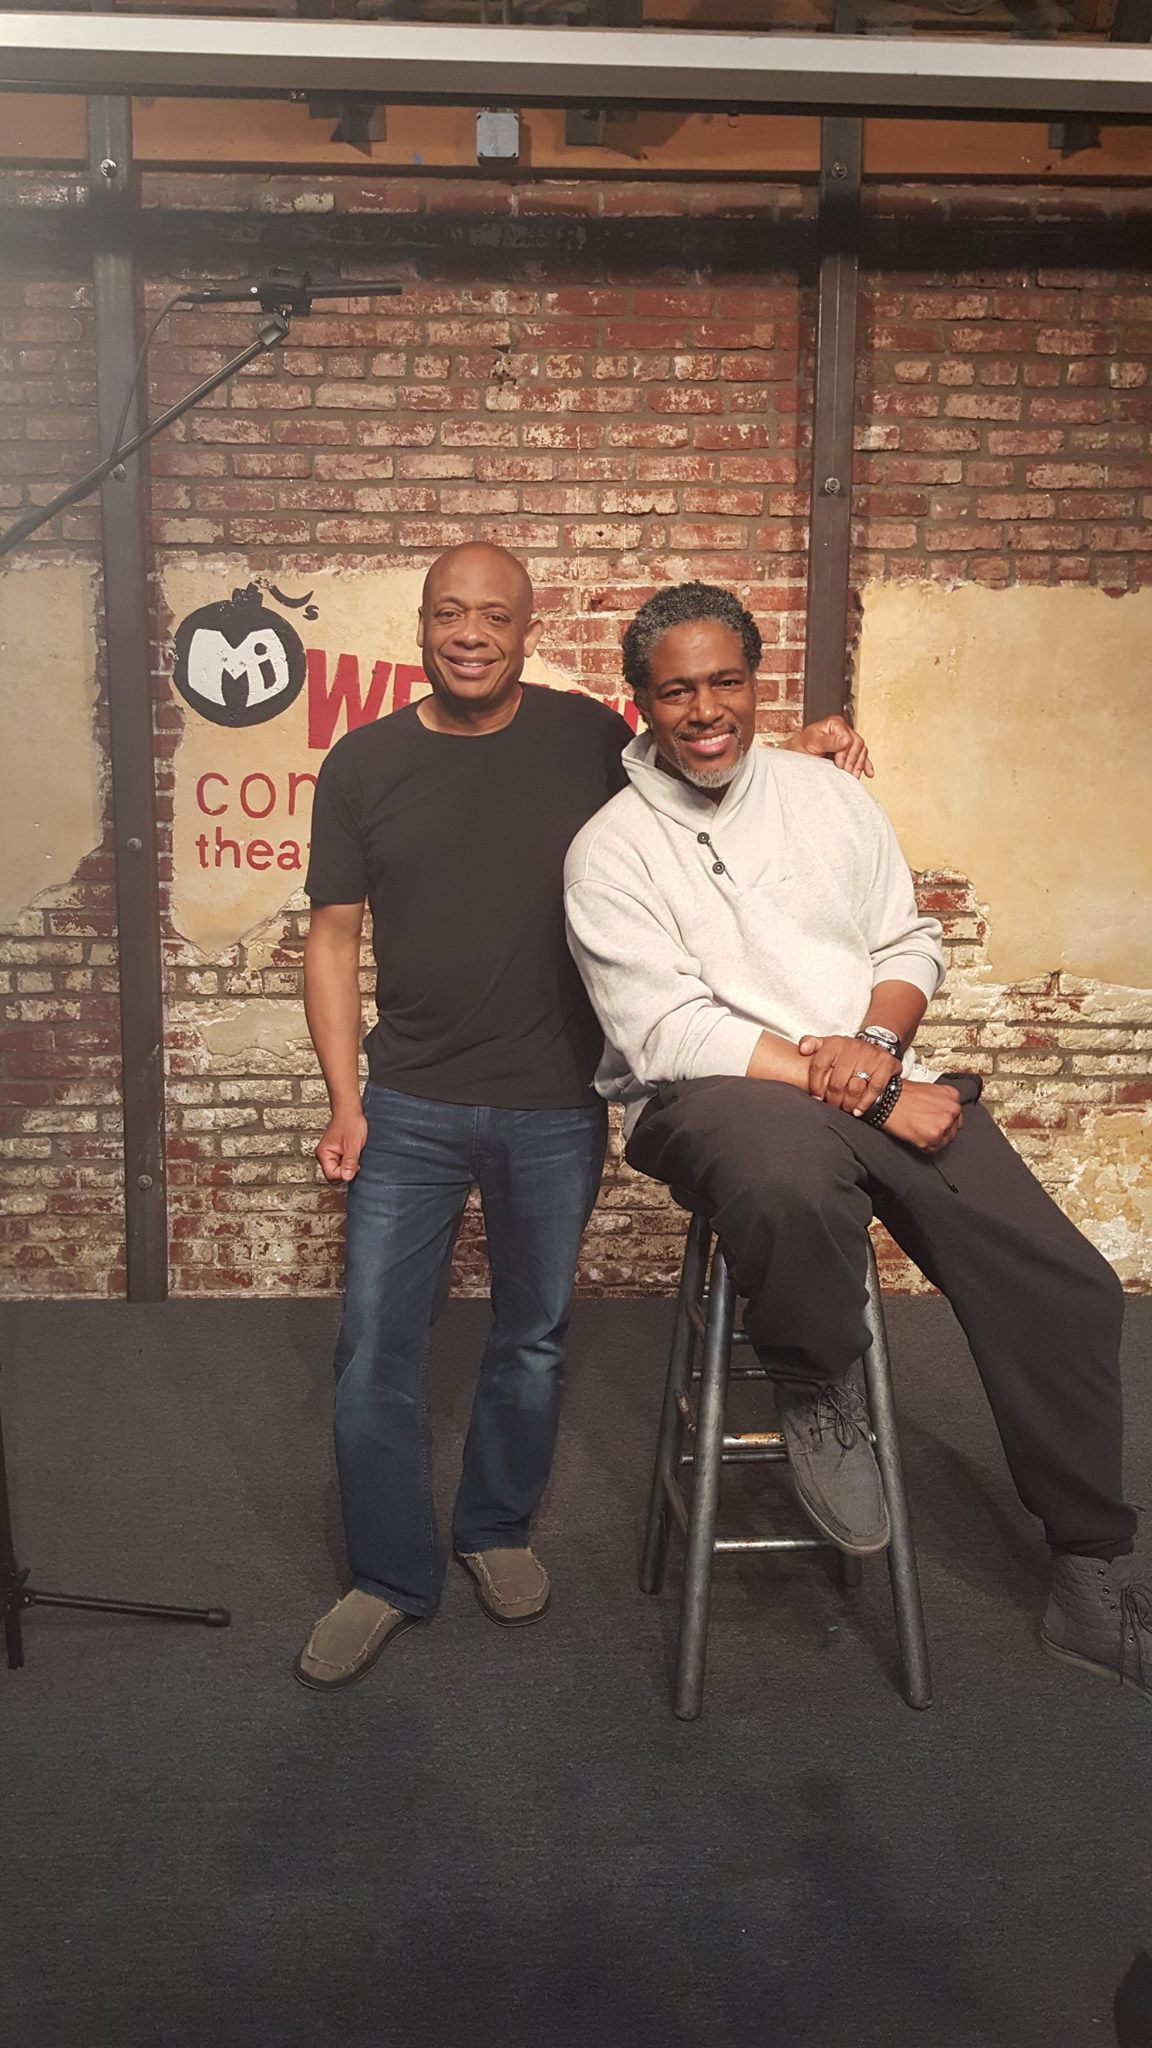 Michael and Ali LeRoi Survivor's Remorse, co creator of Every Body Hates Chris, wiiter for The Chris Rock Show.jpg